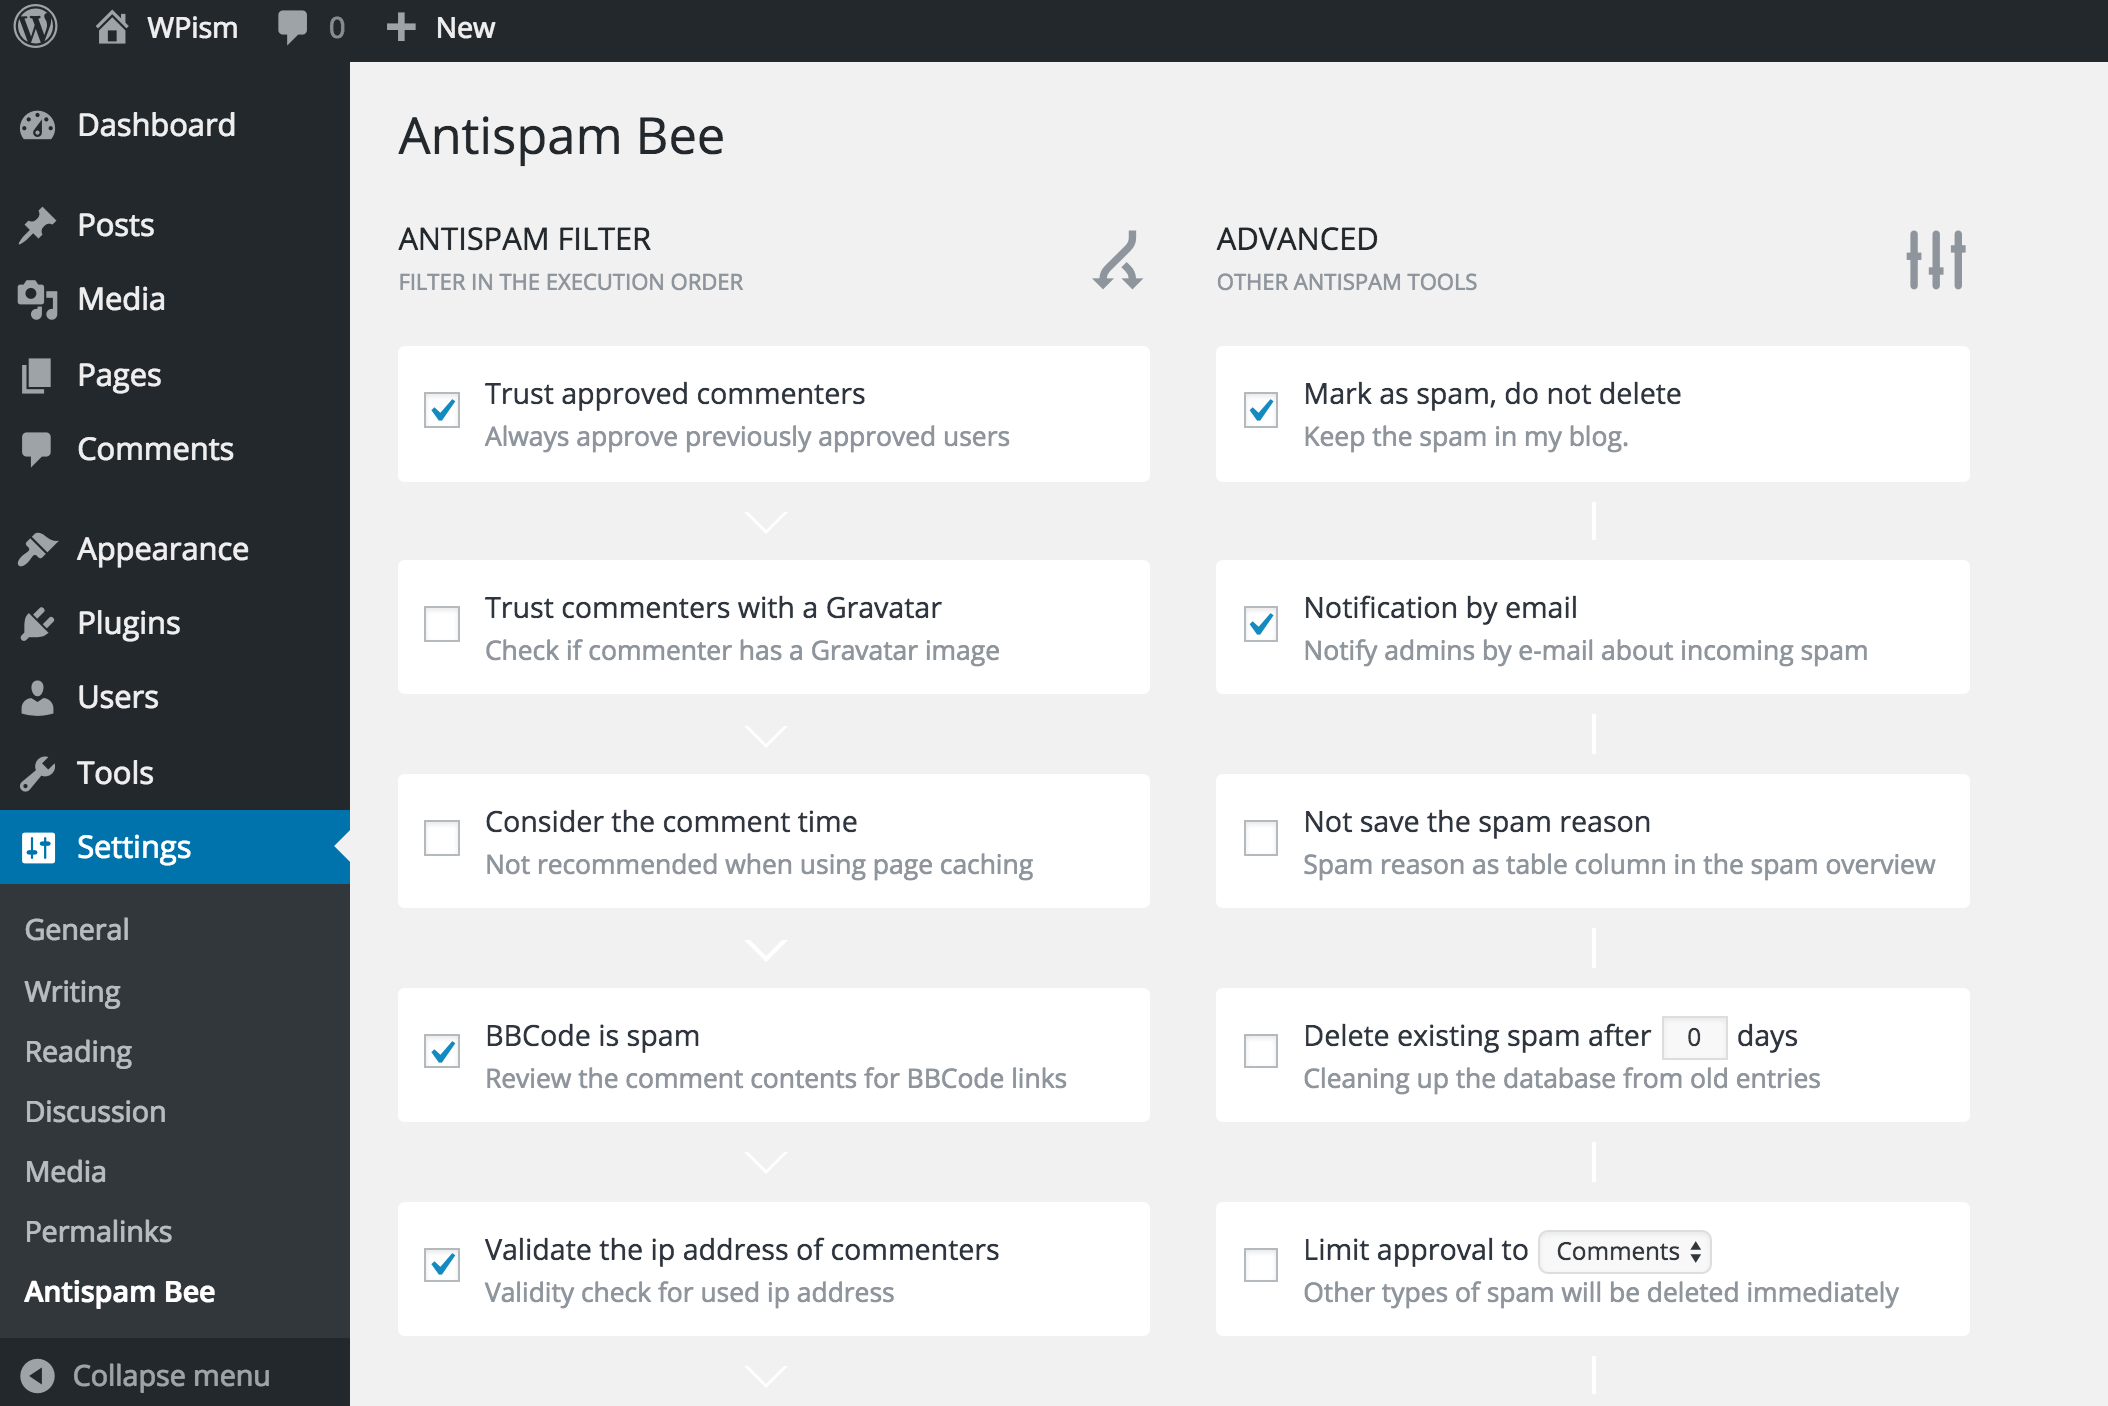 Antispam Bee Plugin Settings